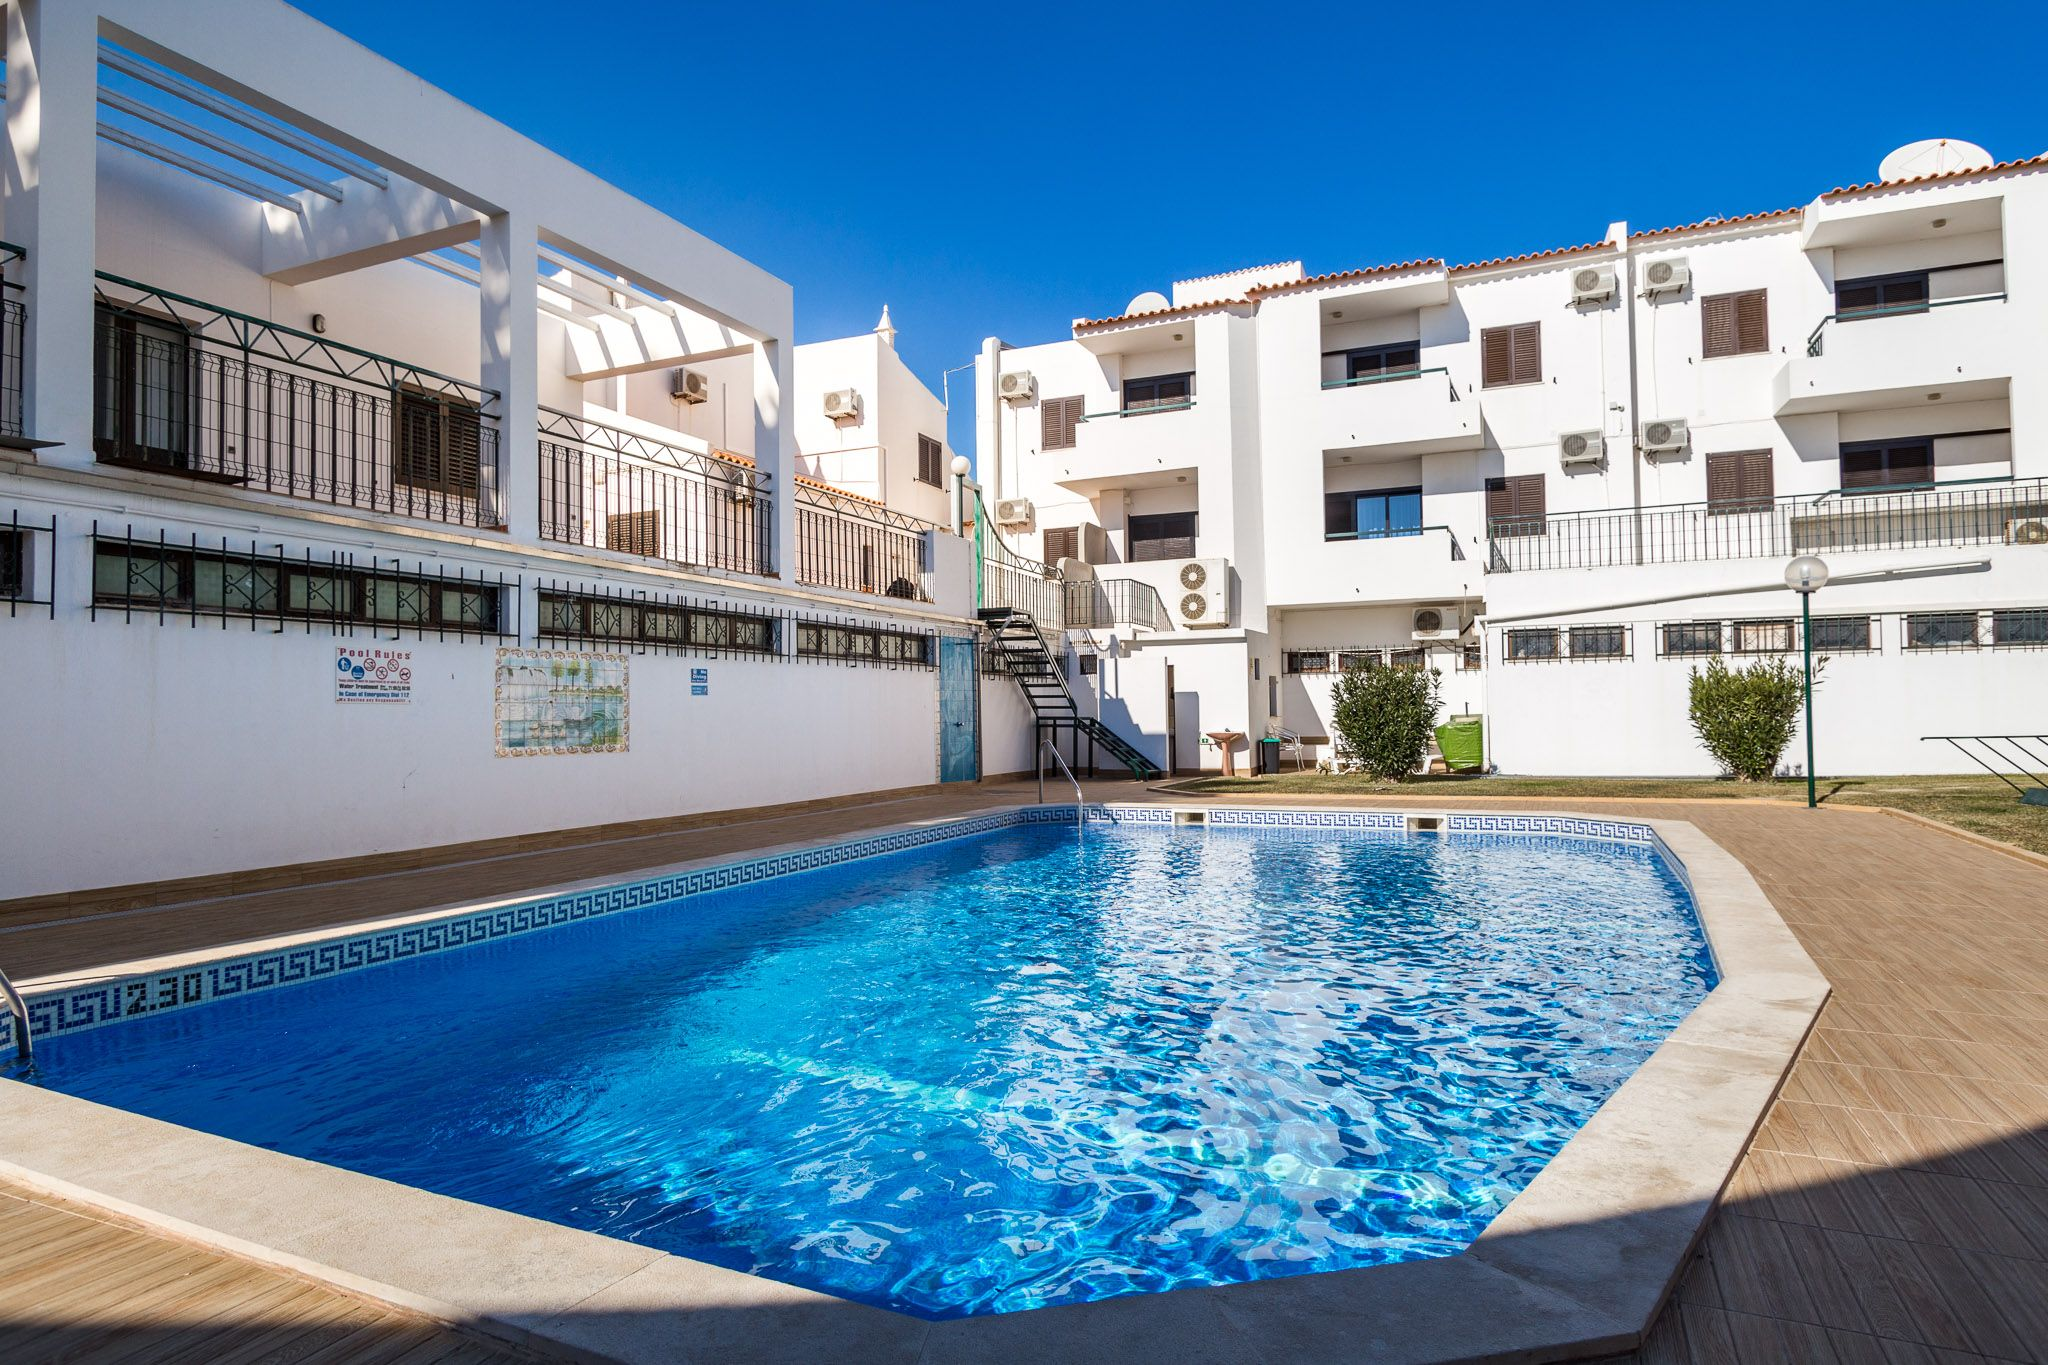 Ethnic Green Apartment in Albufeira. Holiday Destinations. Where to stay in Albufeira. Vacation Rental in Albufeira. Alojamento local in Albufeira. // WarmRental // Find more: http://www.warmrental.com/ethnic-green-duplex-apartment-albufeira/l.941